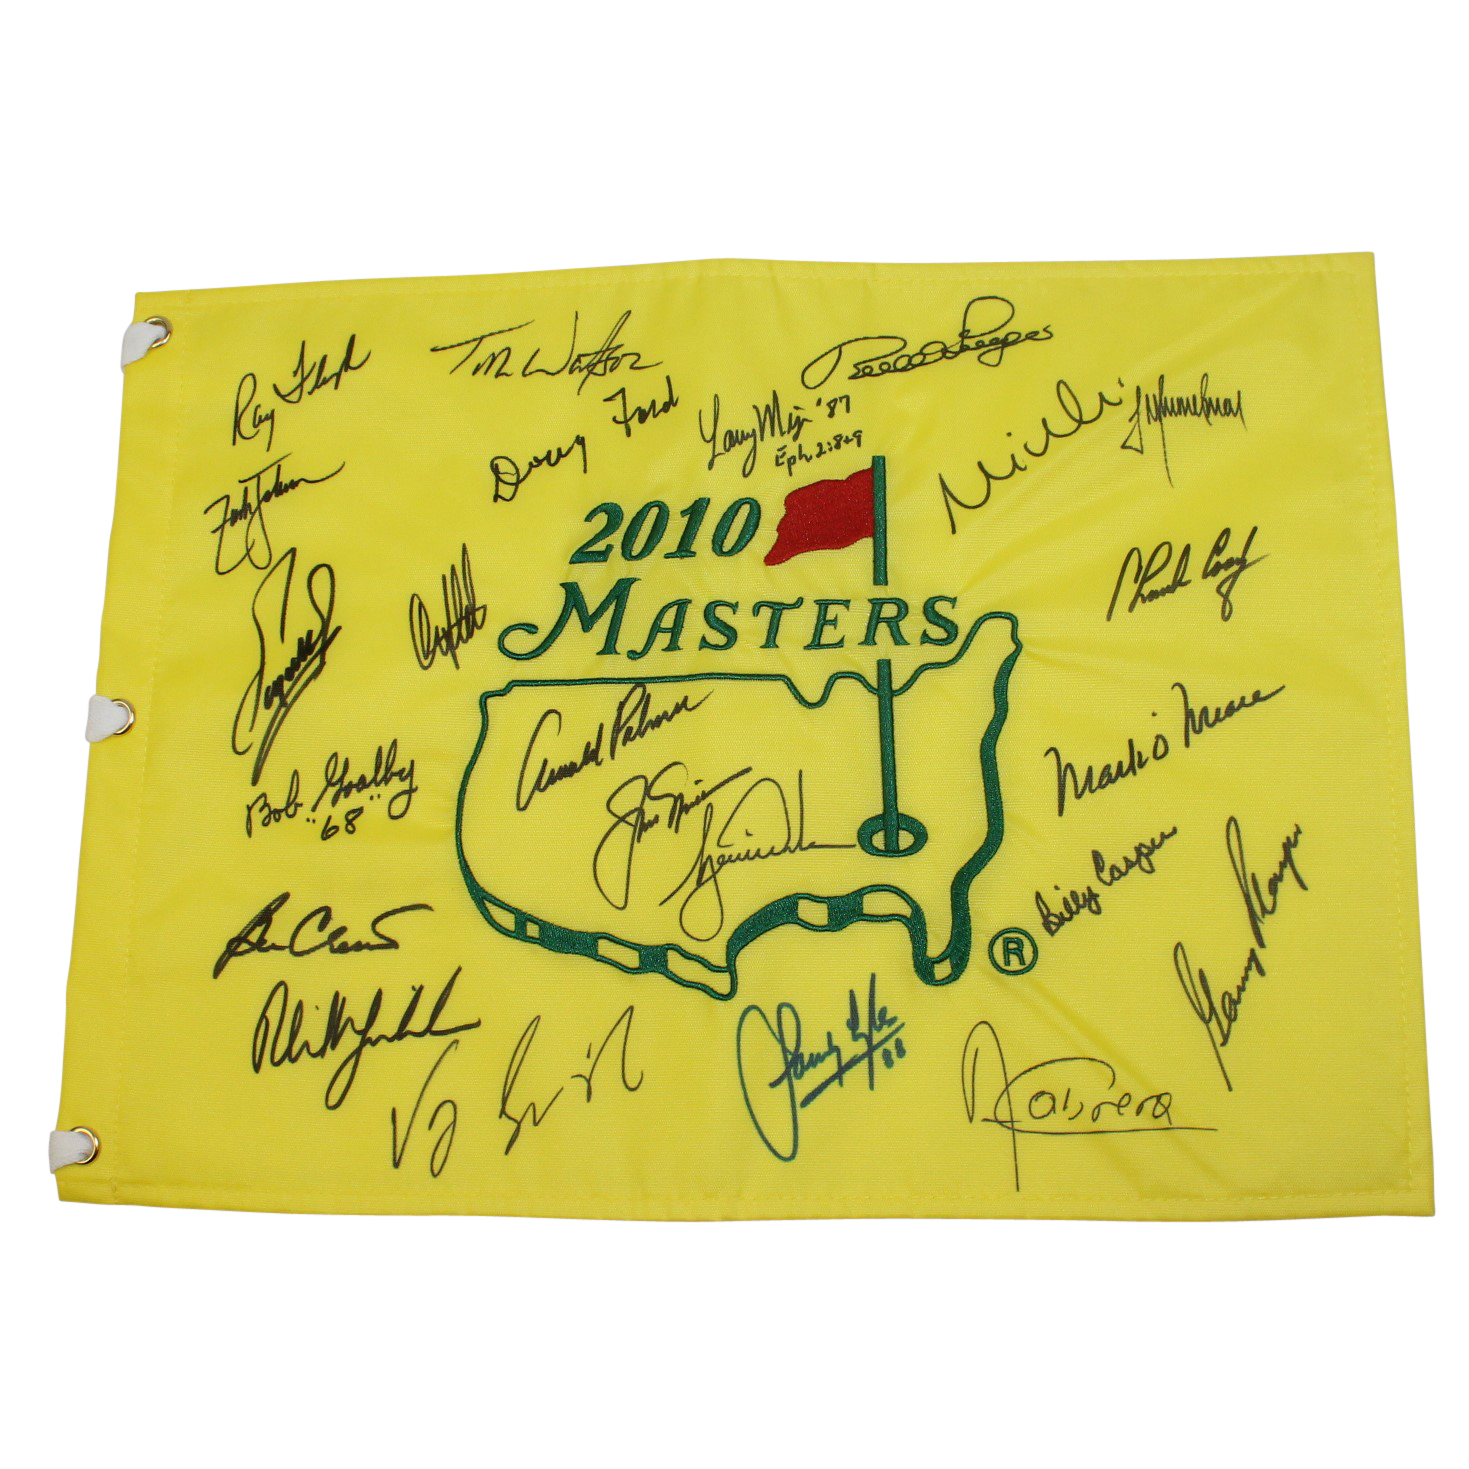 an open letter lot detail floyd s 2010 masters champs dinner flag 20447